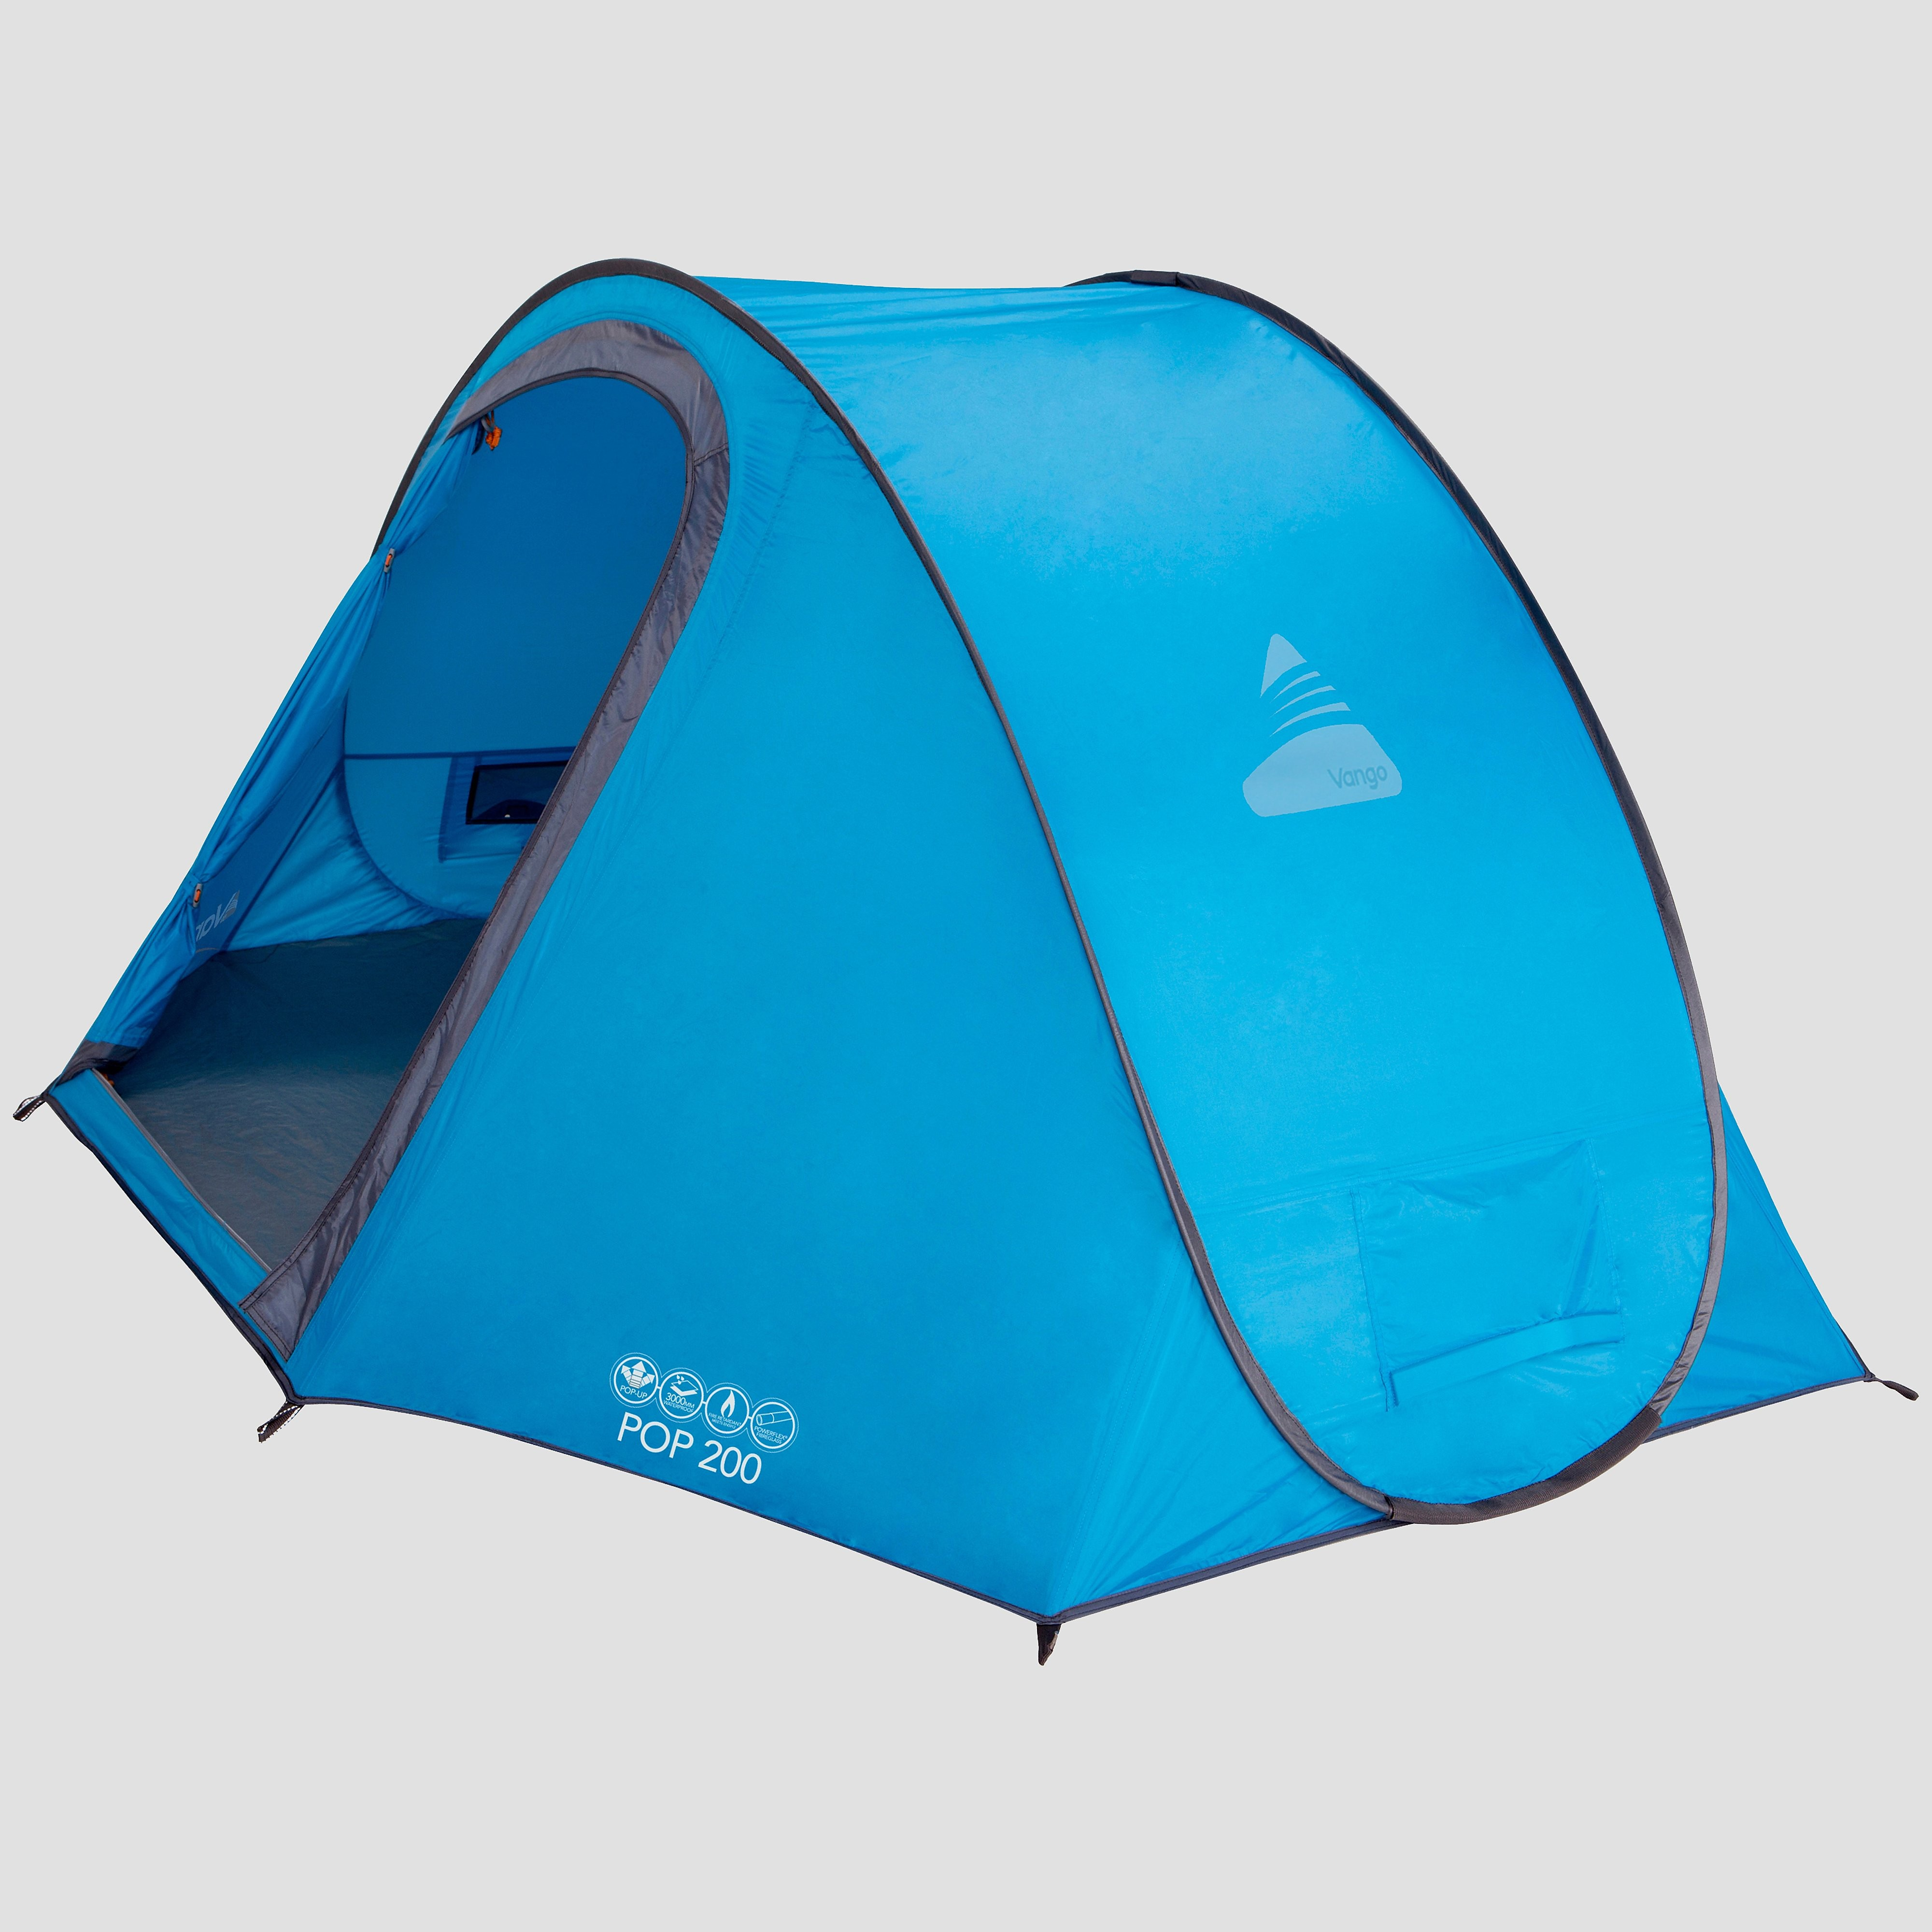 Vango Pop 200 2 Person Tent